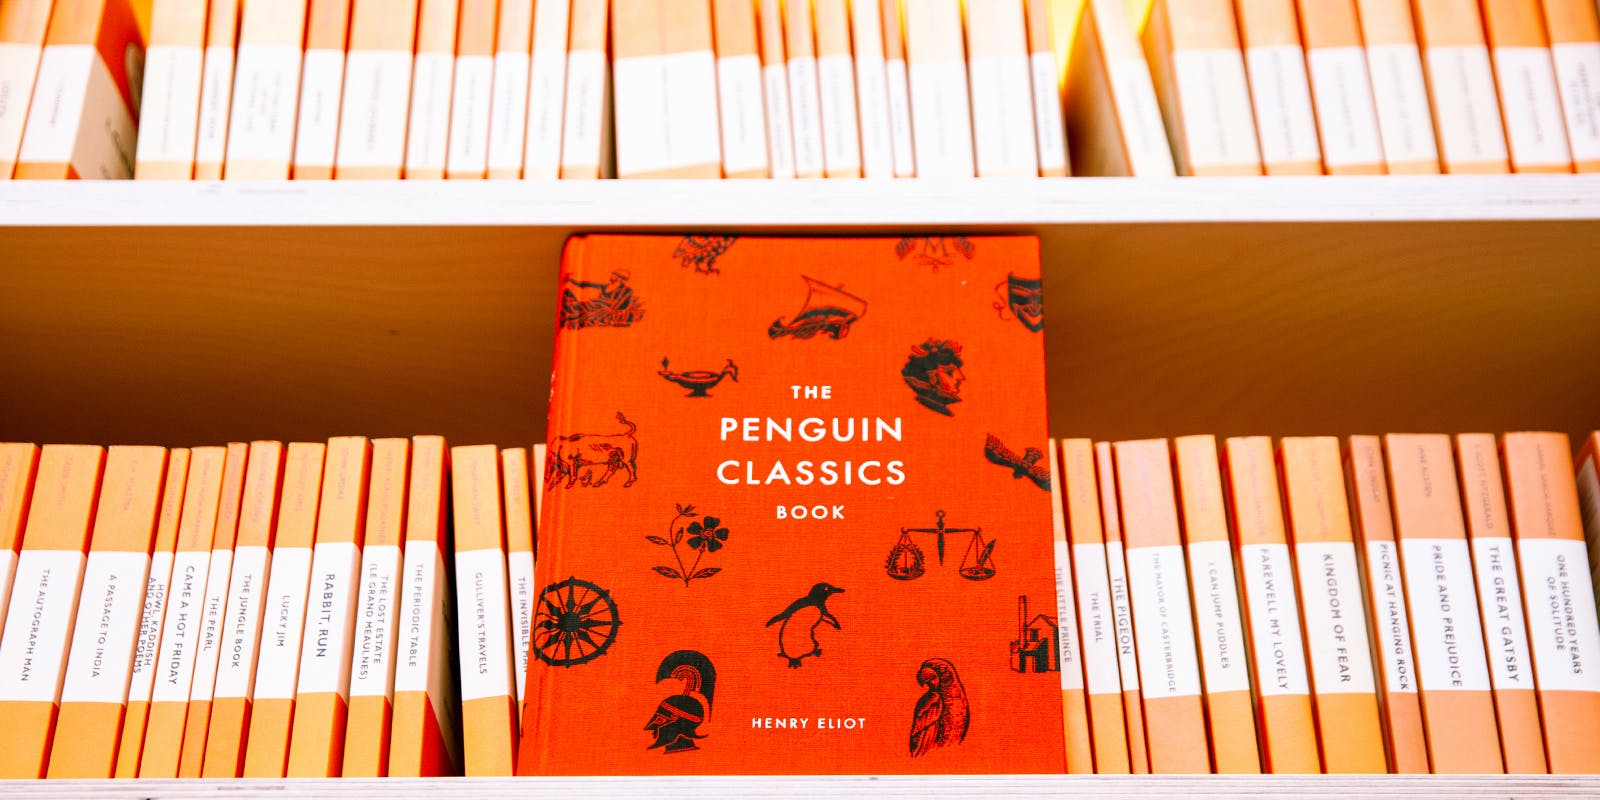 The first Penguin Classic